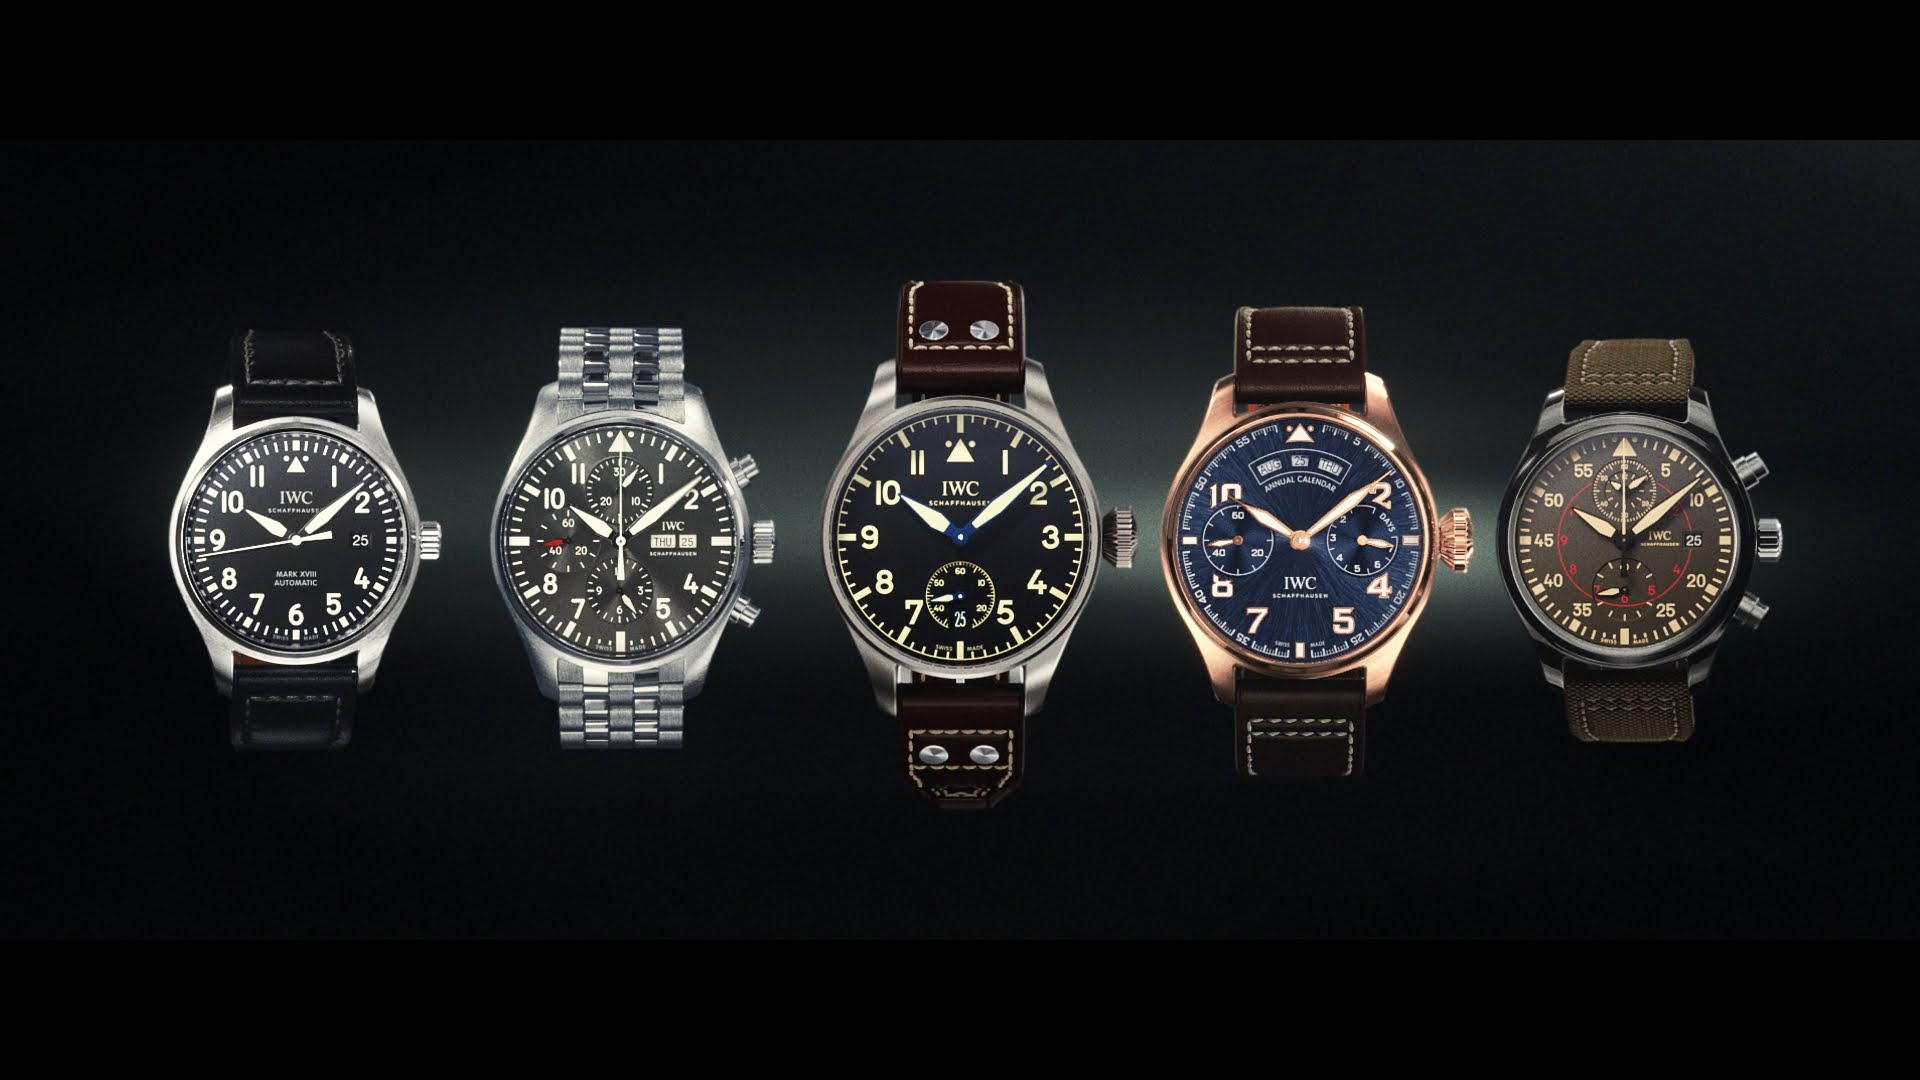 Meet-The-Original-The-IWC-Pilots-Watch-CollectionIWC00001.jpg